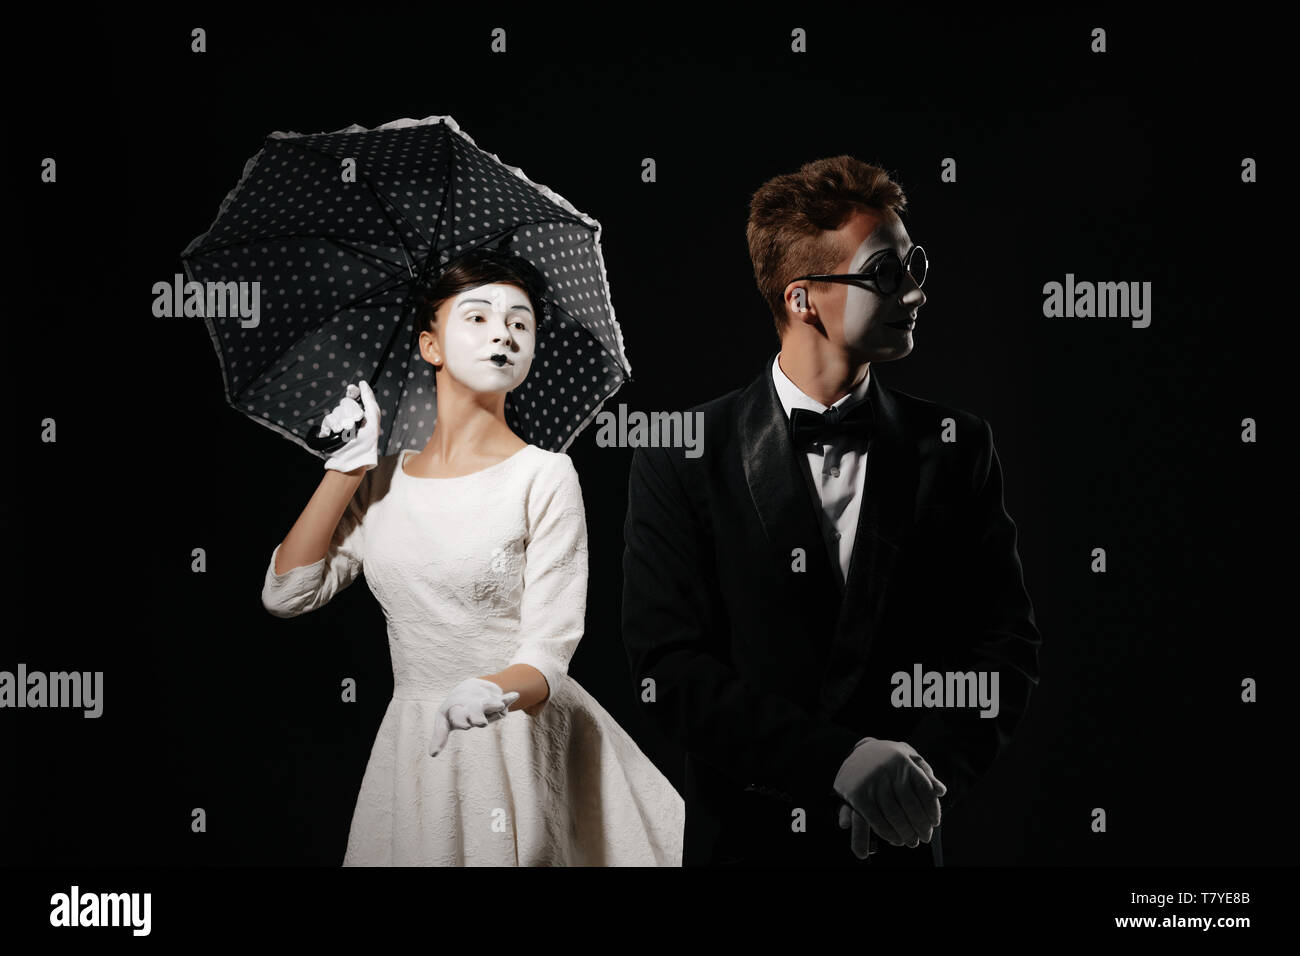 portrait of couple mime with umbrella on black background. man in tuxedo and glasses and woman in white dress. relationship - Stock Image